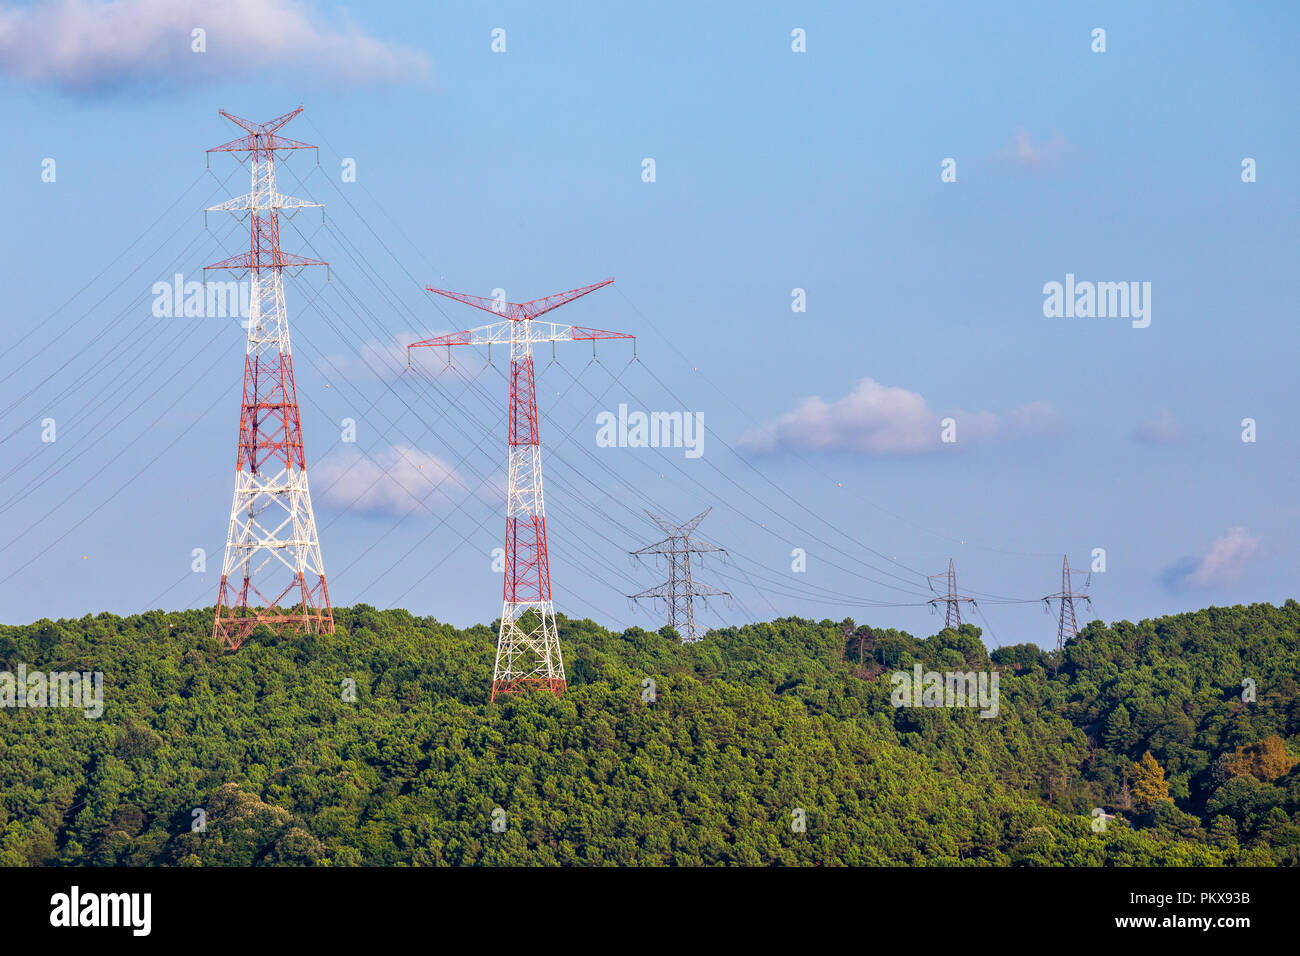 Energy transmission line view with copy space area. Royalty free. Electric power transmission is the bulk movement of electrical energy. - Stock Image